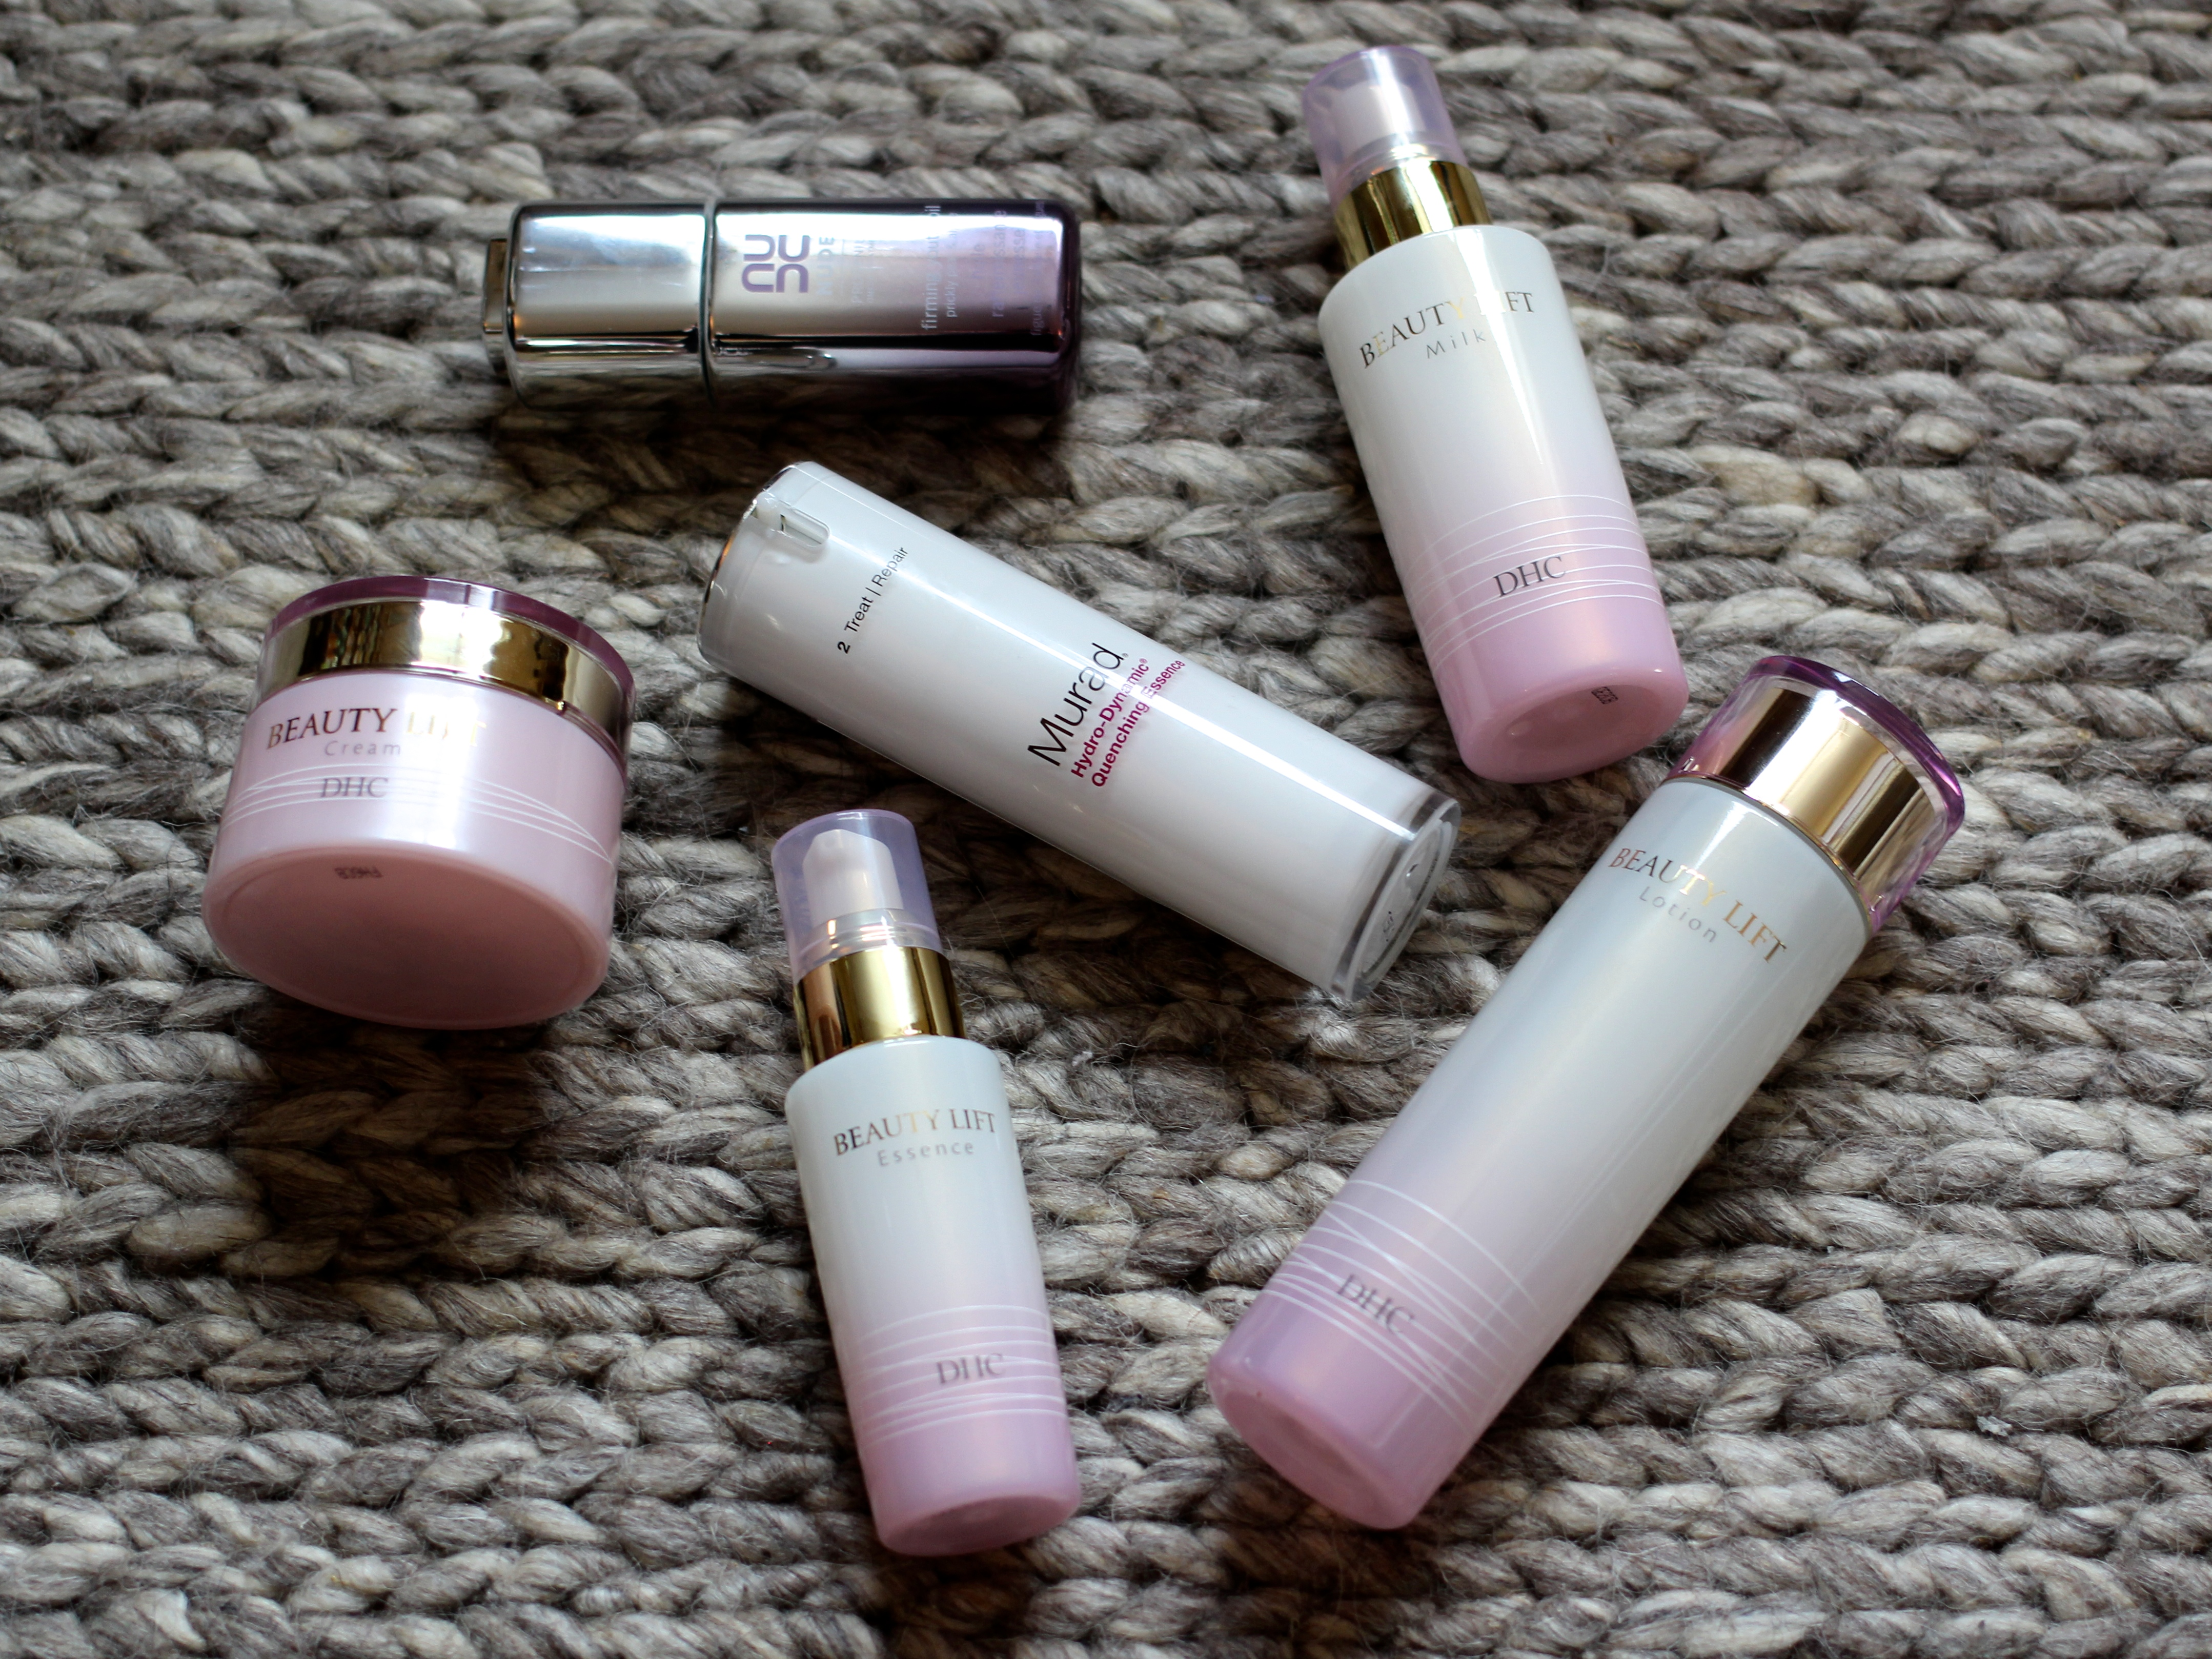 Murad Essence, DHC Lift Milk and Nude Firming Oil